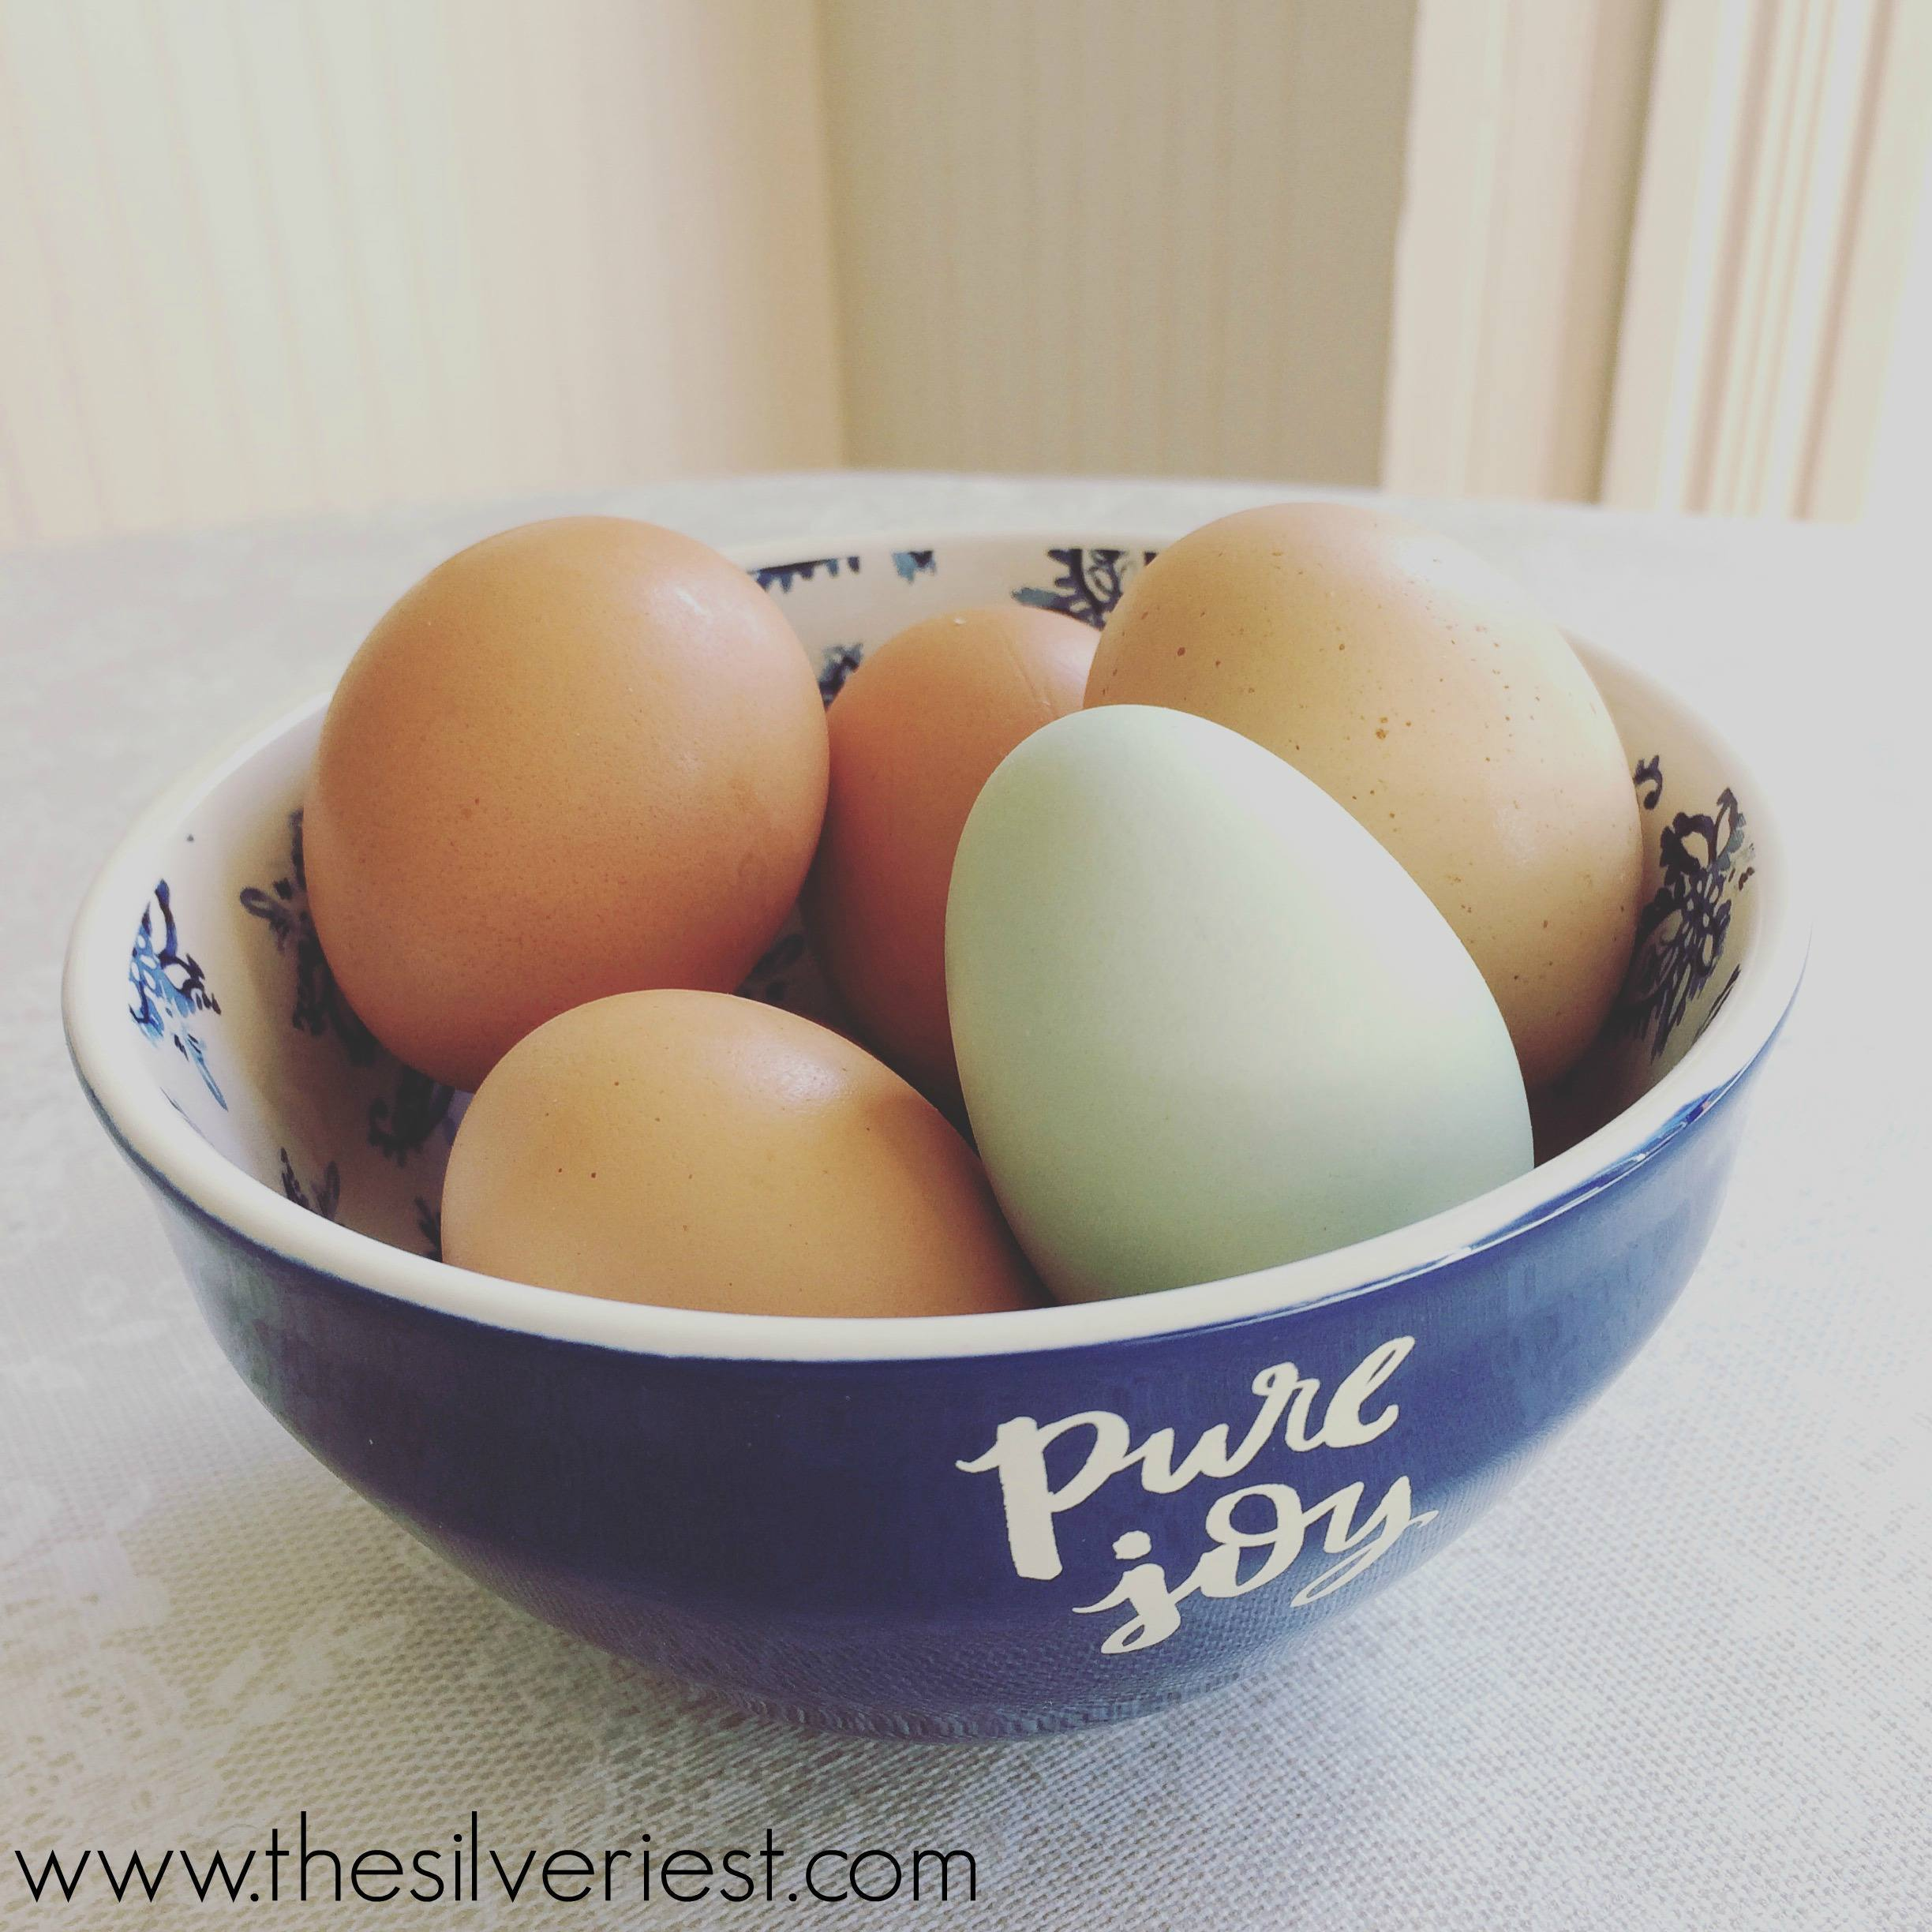 Despite pretty labels in the supermarket egg case, it's not easy to understand what you are buying. This post explains the differences, and why they matter. www.thesilveriest.com